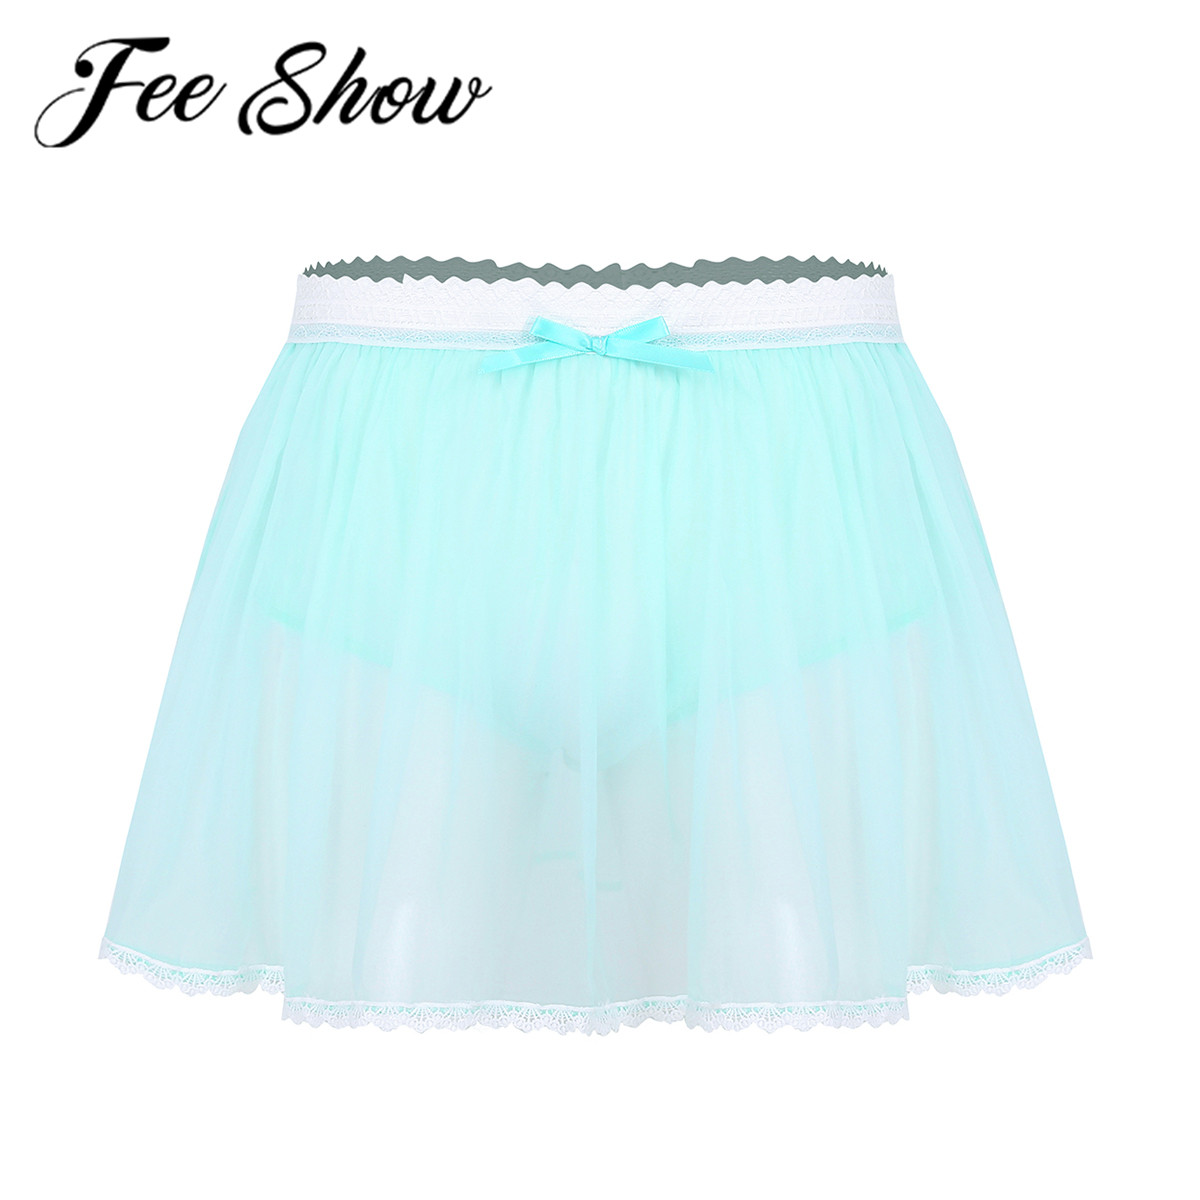 Feeshow <font><b>Lingerie</b></font> <font><b>Men</b></font> <font><b>Sexy</b></font> Sissy Panties Short Skirt Male See Through G-string Thong Underwear Transparent Ruffle Tull Crossdress image